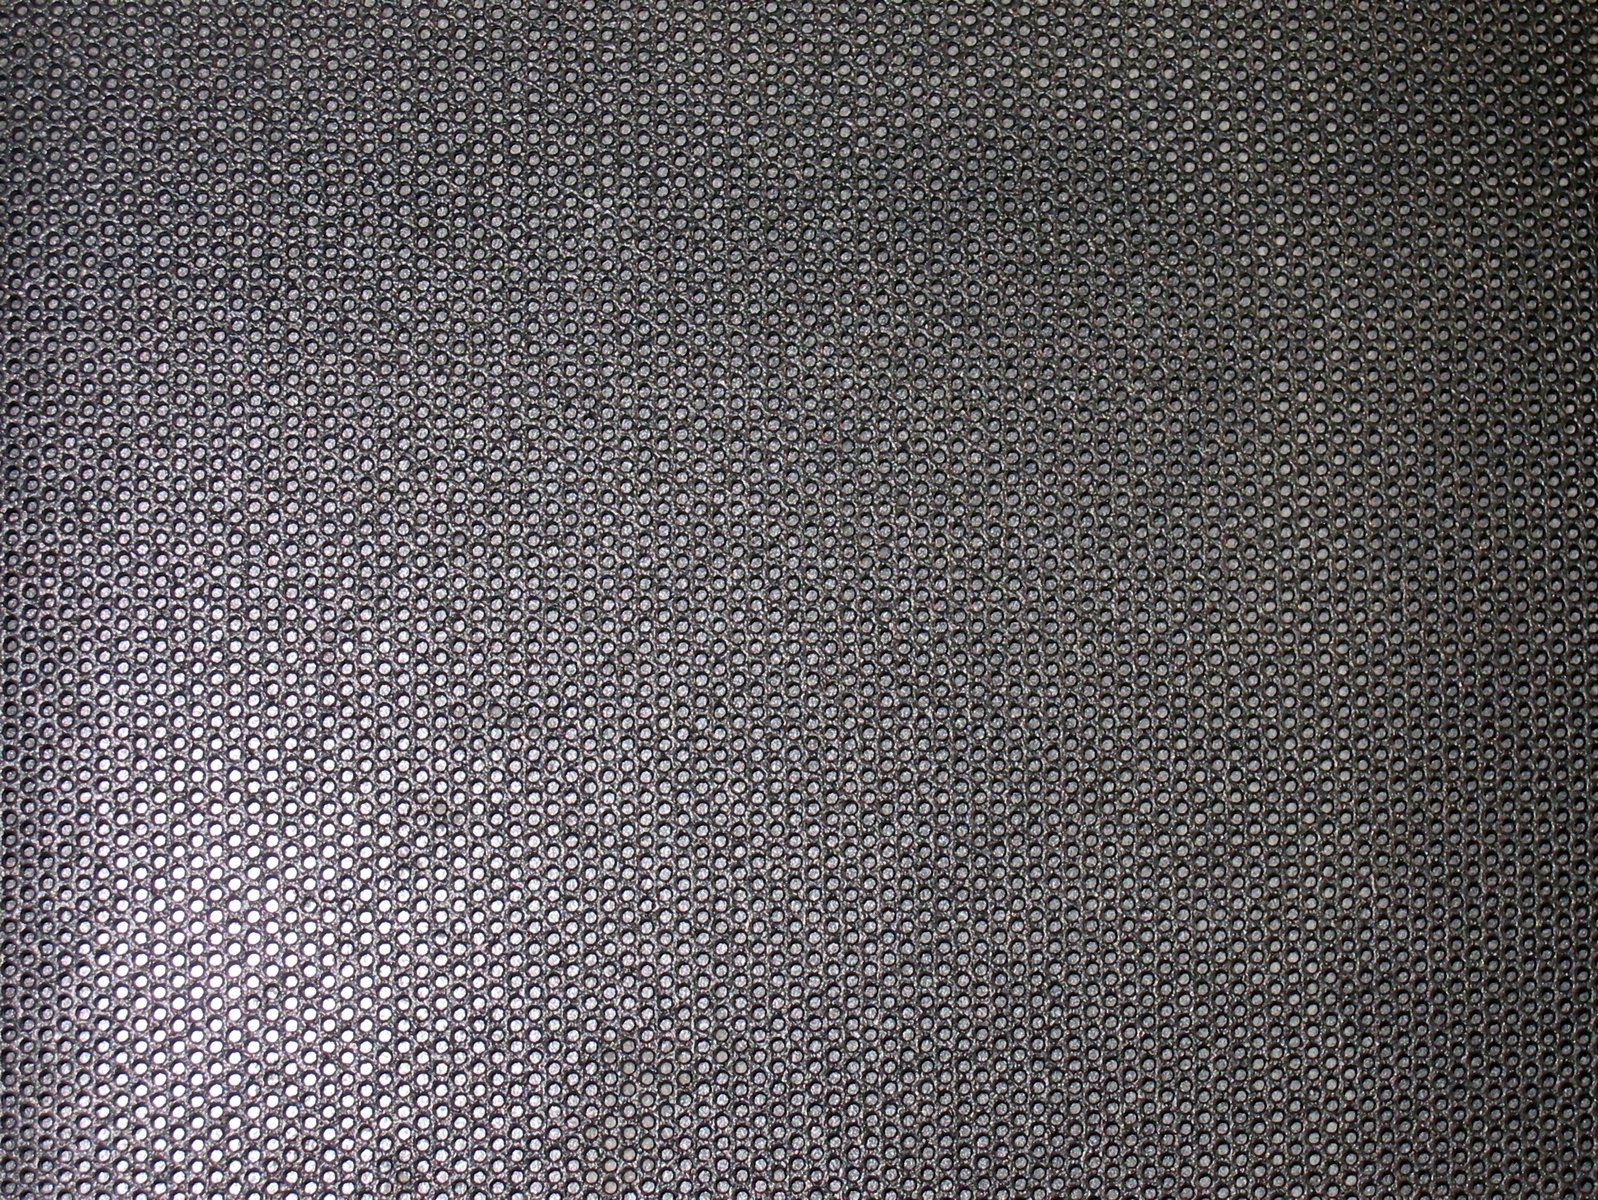 Free abstract metal texture Stock Photo - FreeImages.com